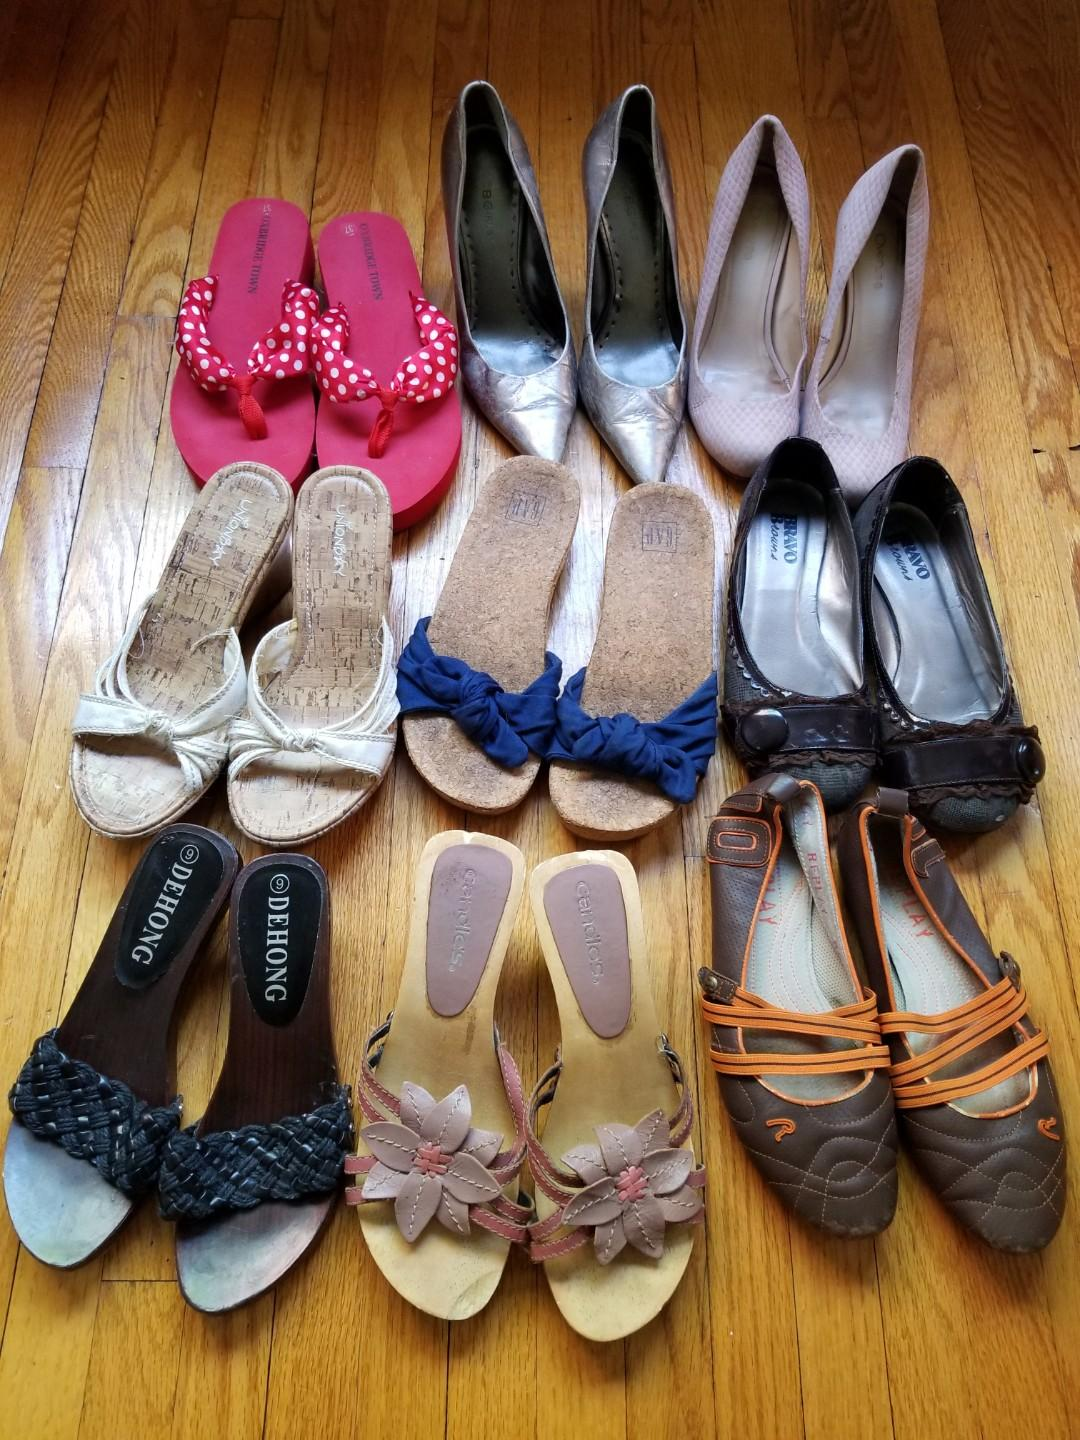 Shoe clearance size 7 leather BCBG Brown's Replay. FirstRow $15. Second and third row $8. Flip Flops $5. Take all six pairs in last two rows for $30 or take all three pairs first row for $40. All size 7. Pick